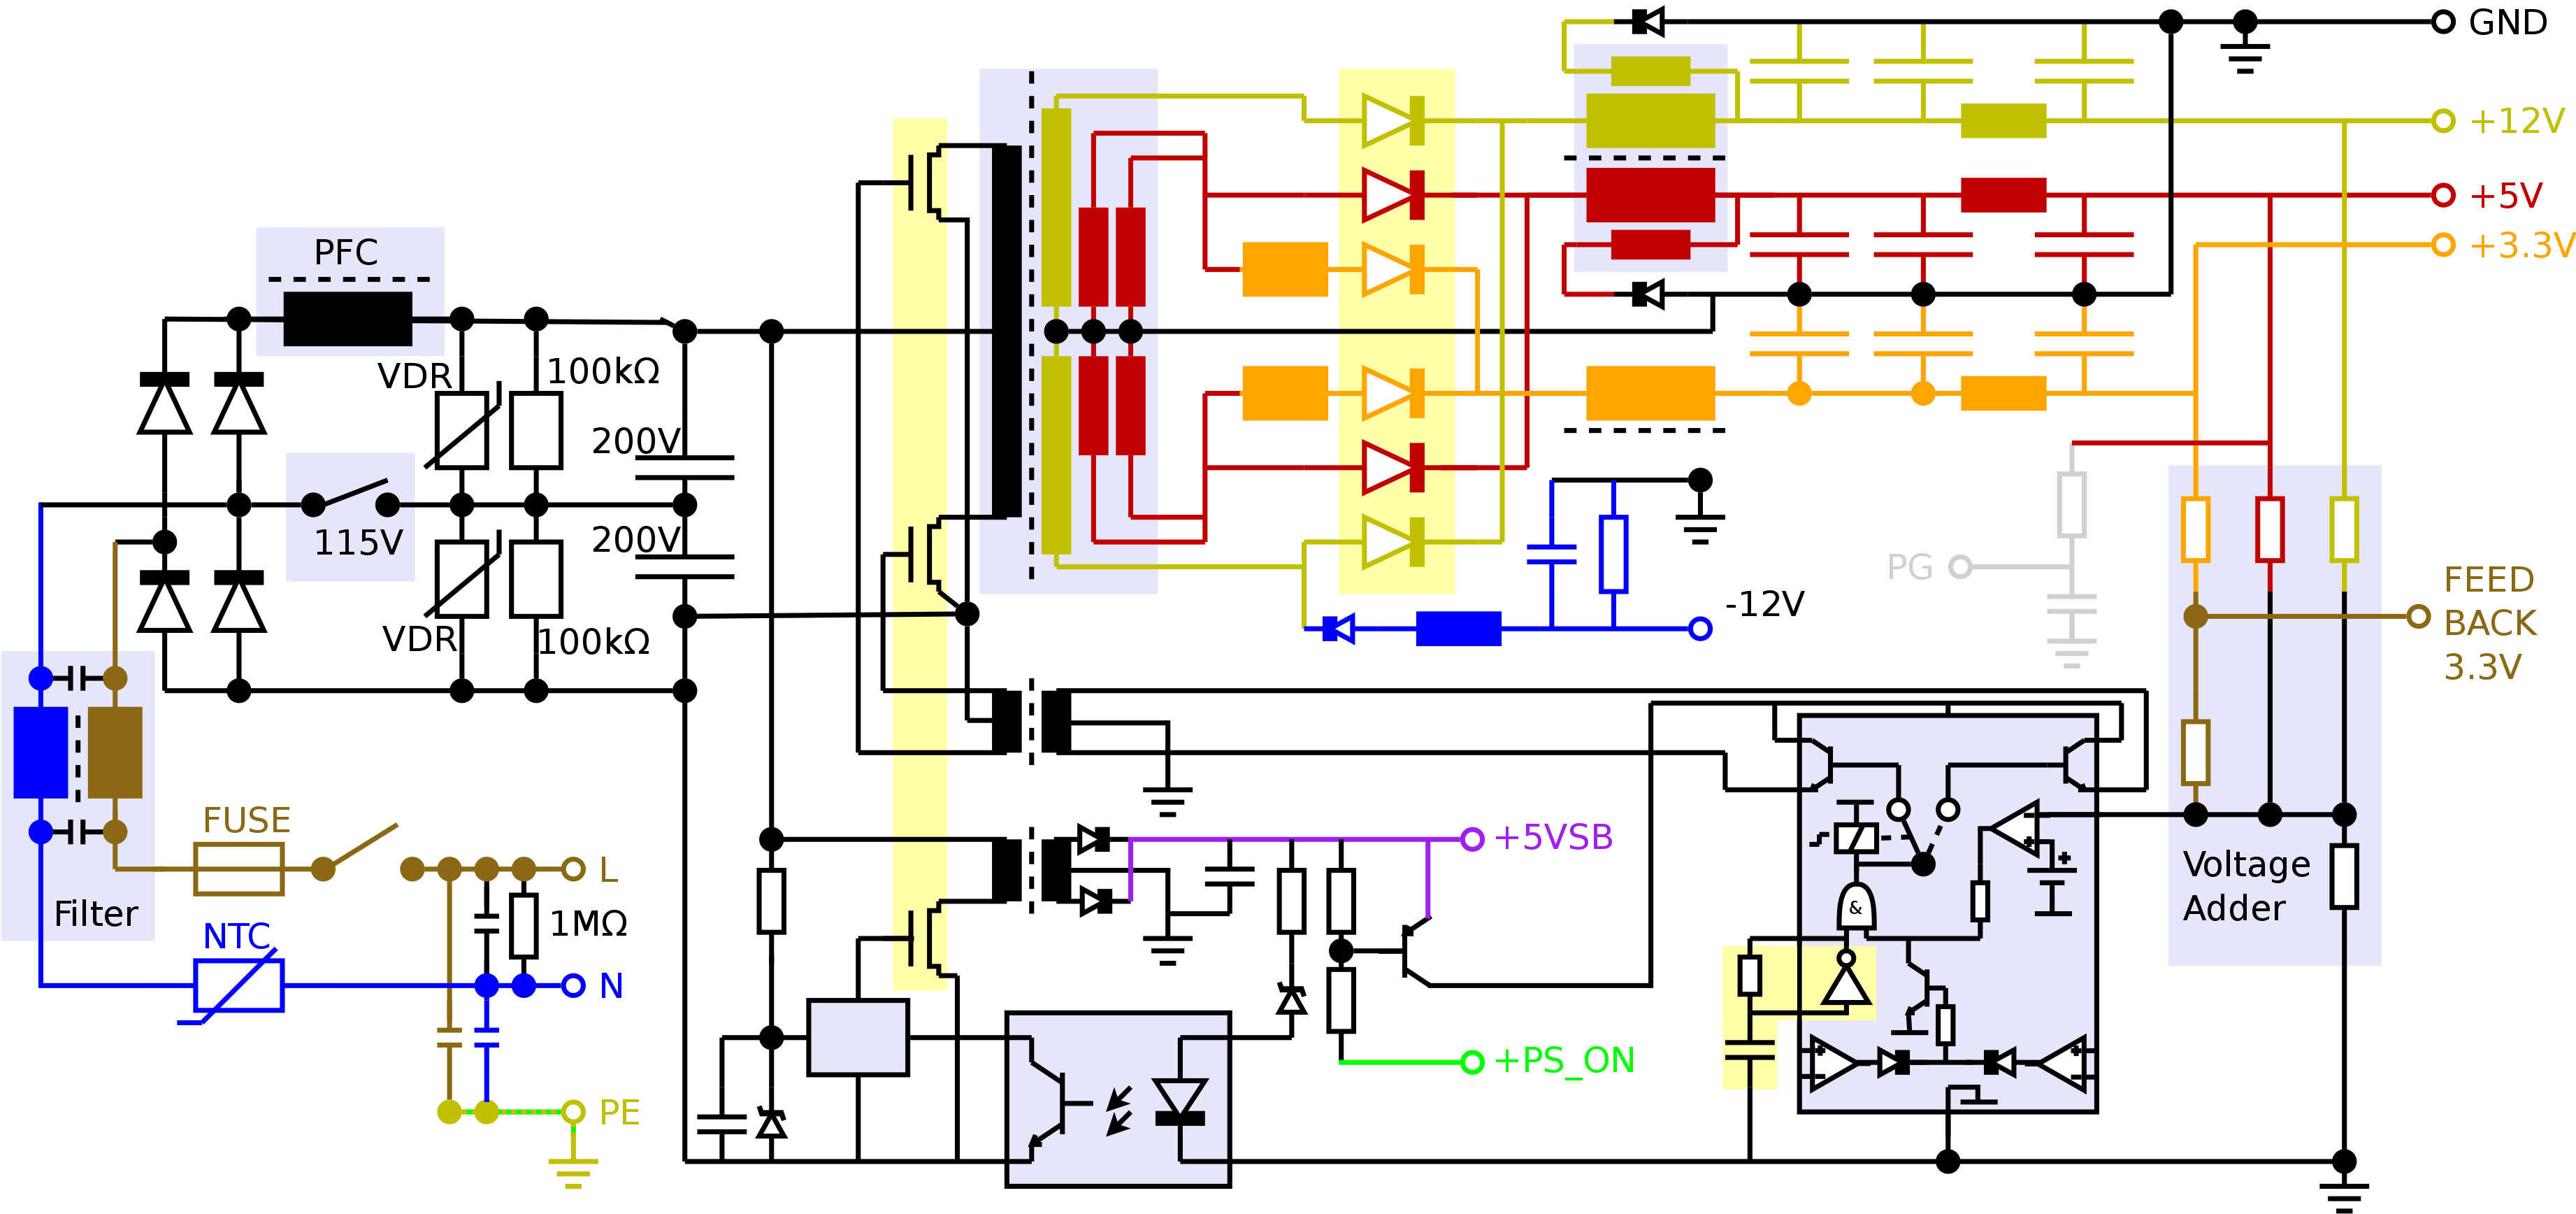 medium resolution of wiring diagram pc power supply for computer the adorable with atwiring diagram pc power supply for